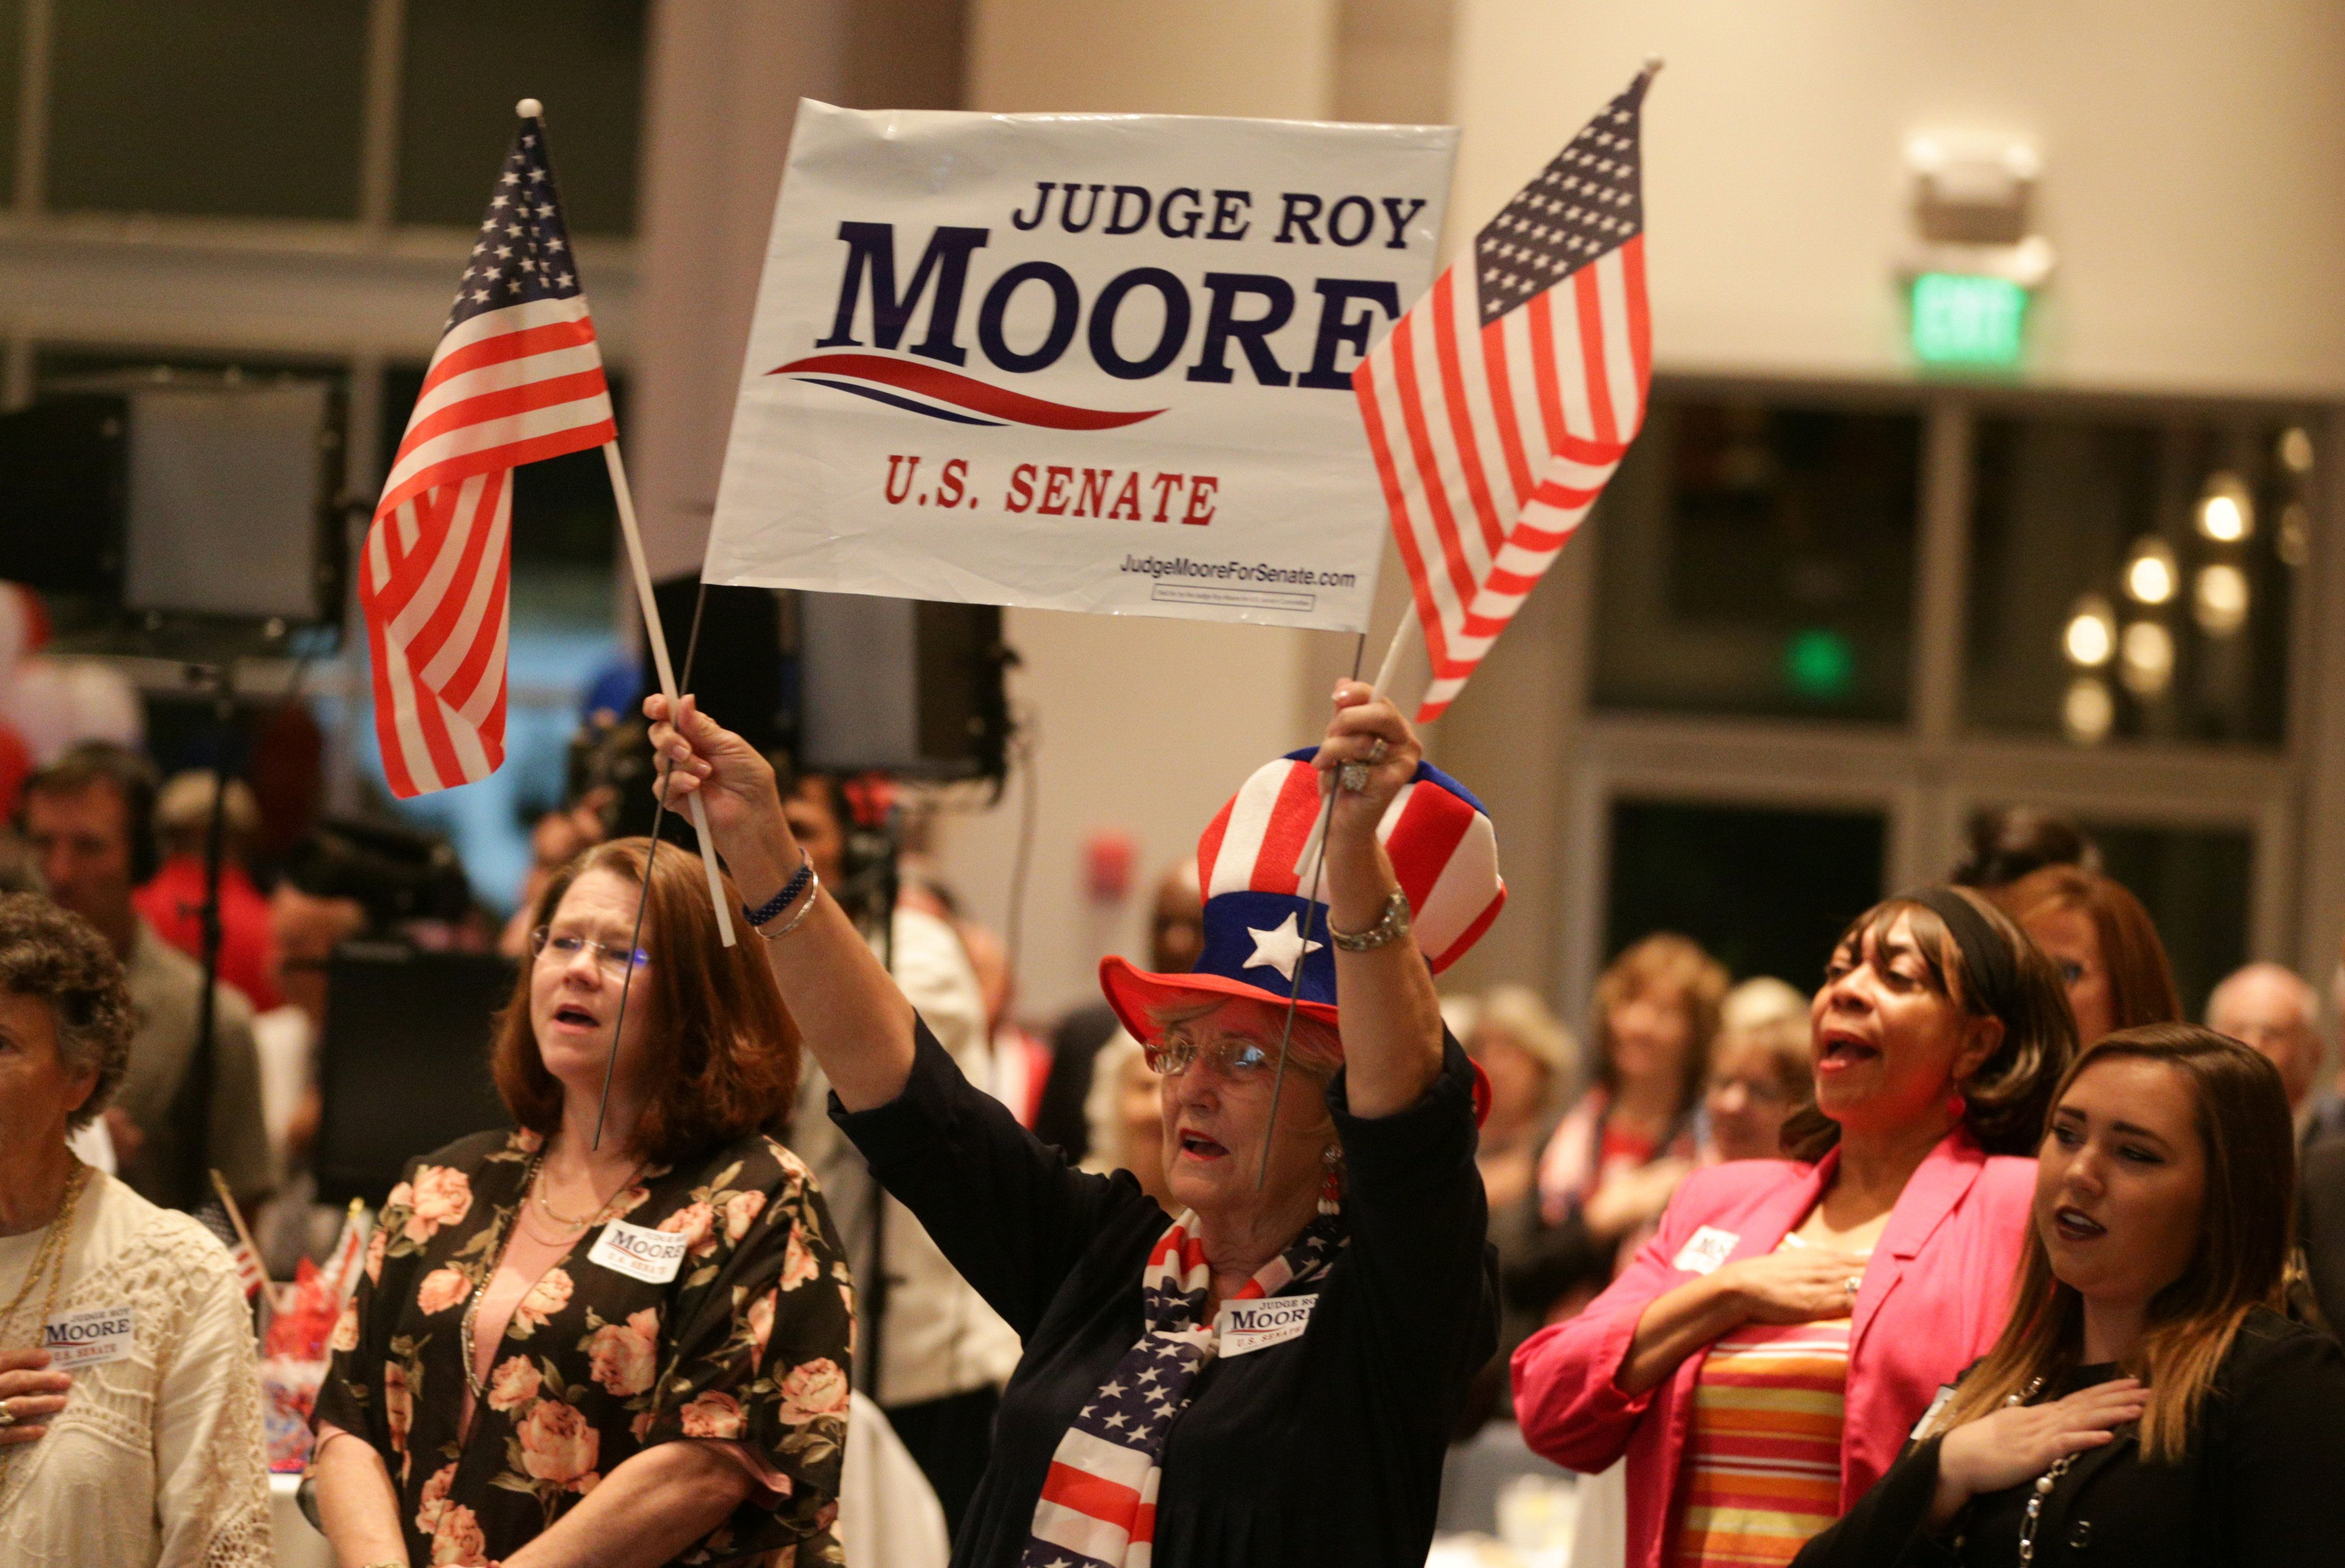 A Republican Roy Moore supporter stands for the national anthem during the runoff election for the Republican nomination for Alabama's U.S. Senate seat vacated by Attorney General Jeff Sessions, at the RSA Activity Center in Montgomery, Alabama, U.S. September 26, 2017.  REUTERS/Marvin Gentry